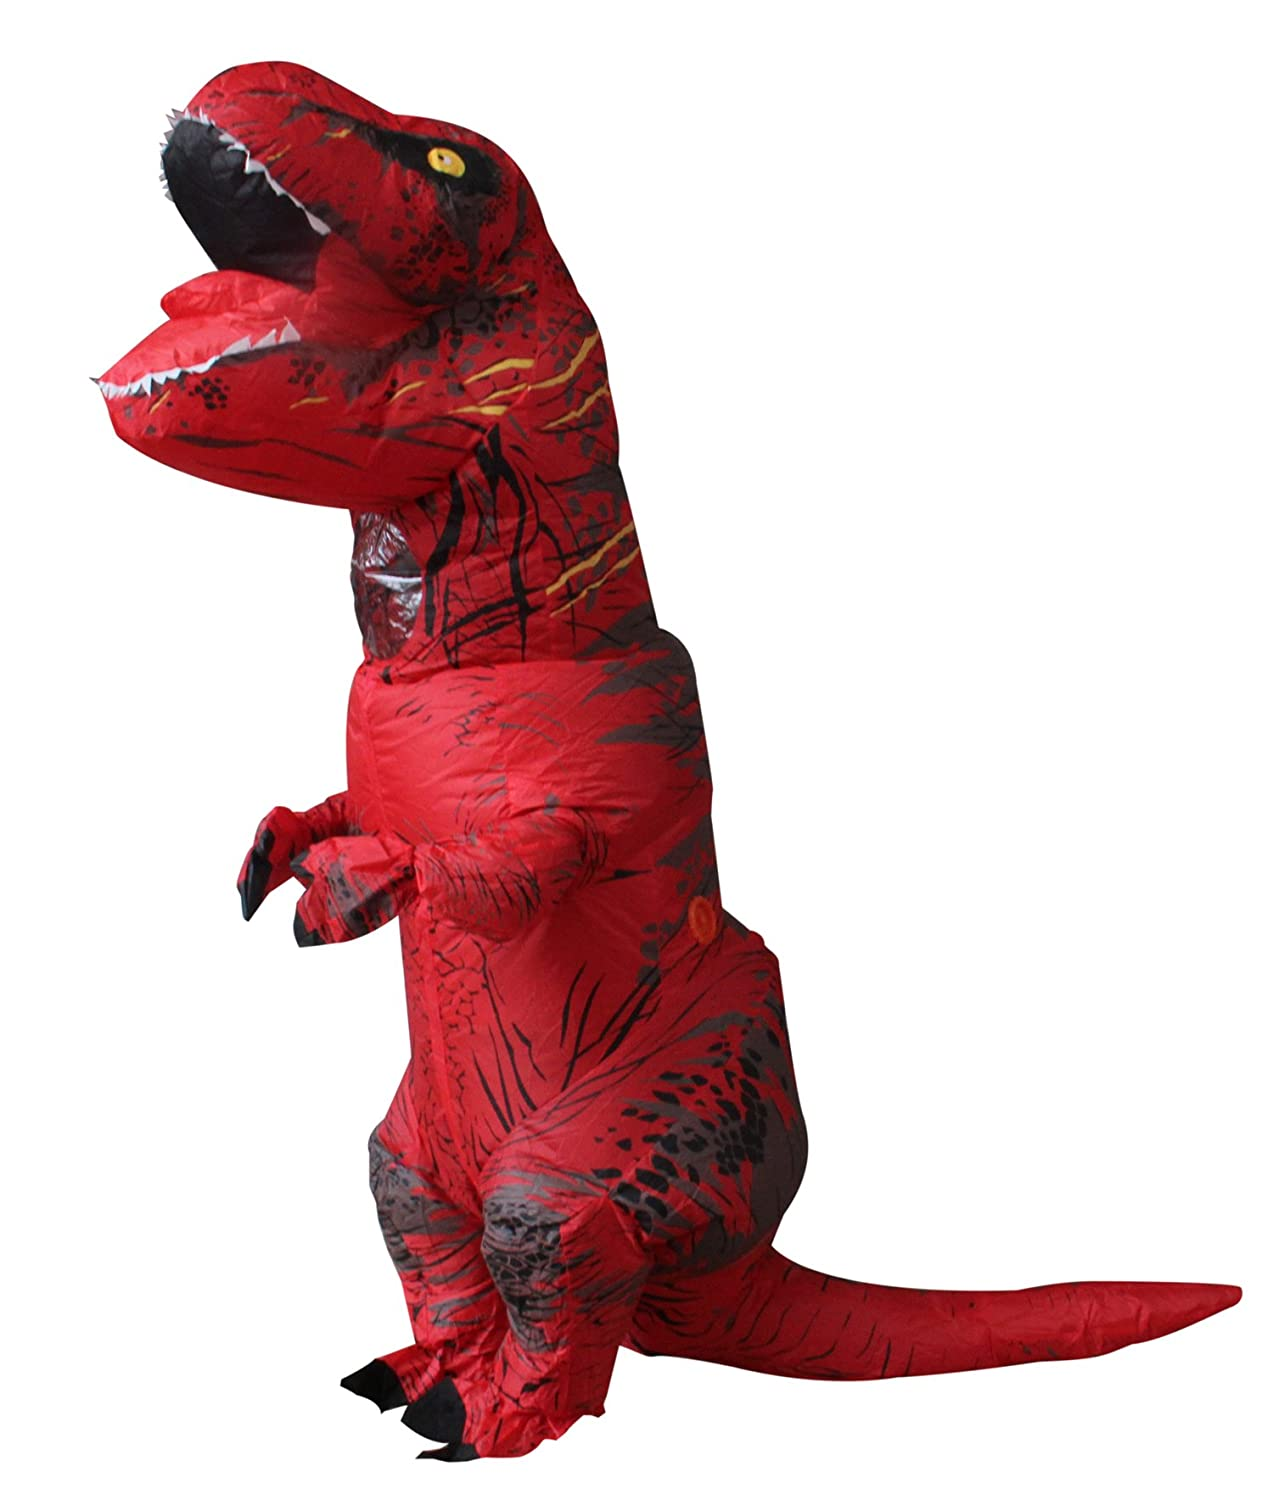 Halloween adulto inflable T Rex Dinosaur Partido traje Funny Dress rojo con mochila y cable USB